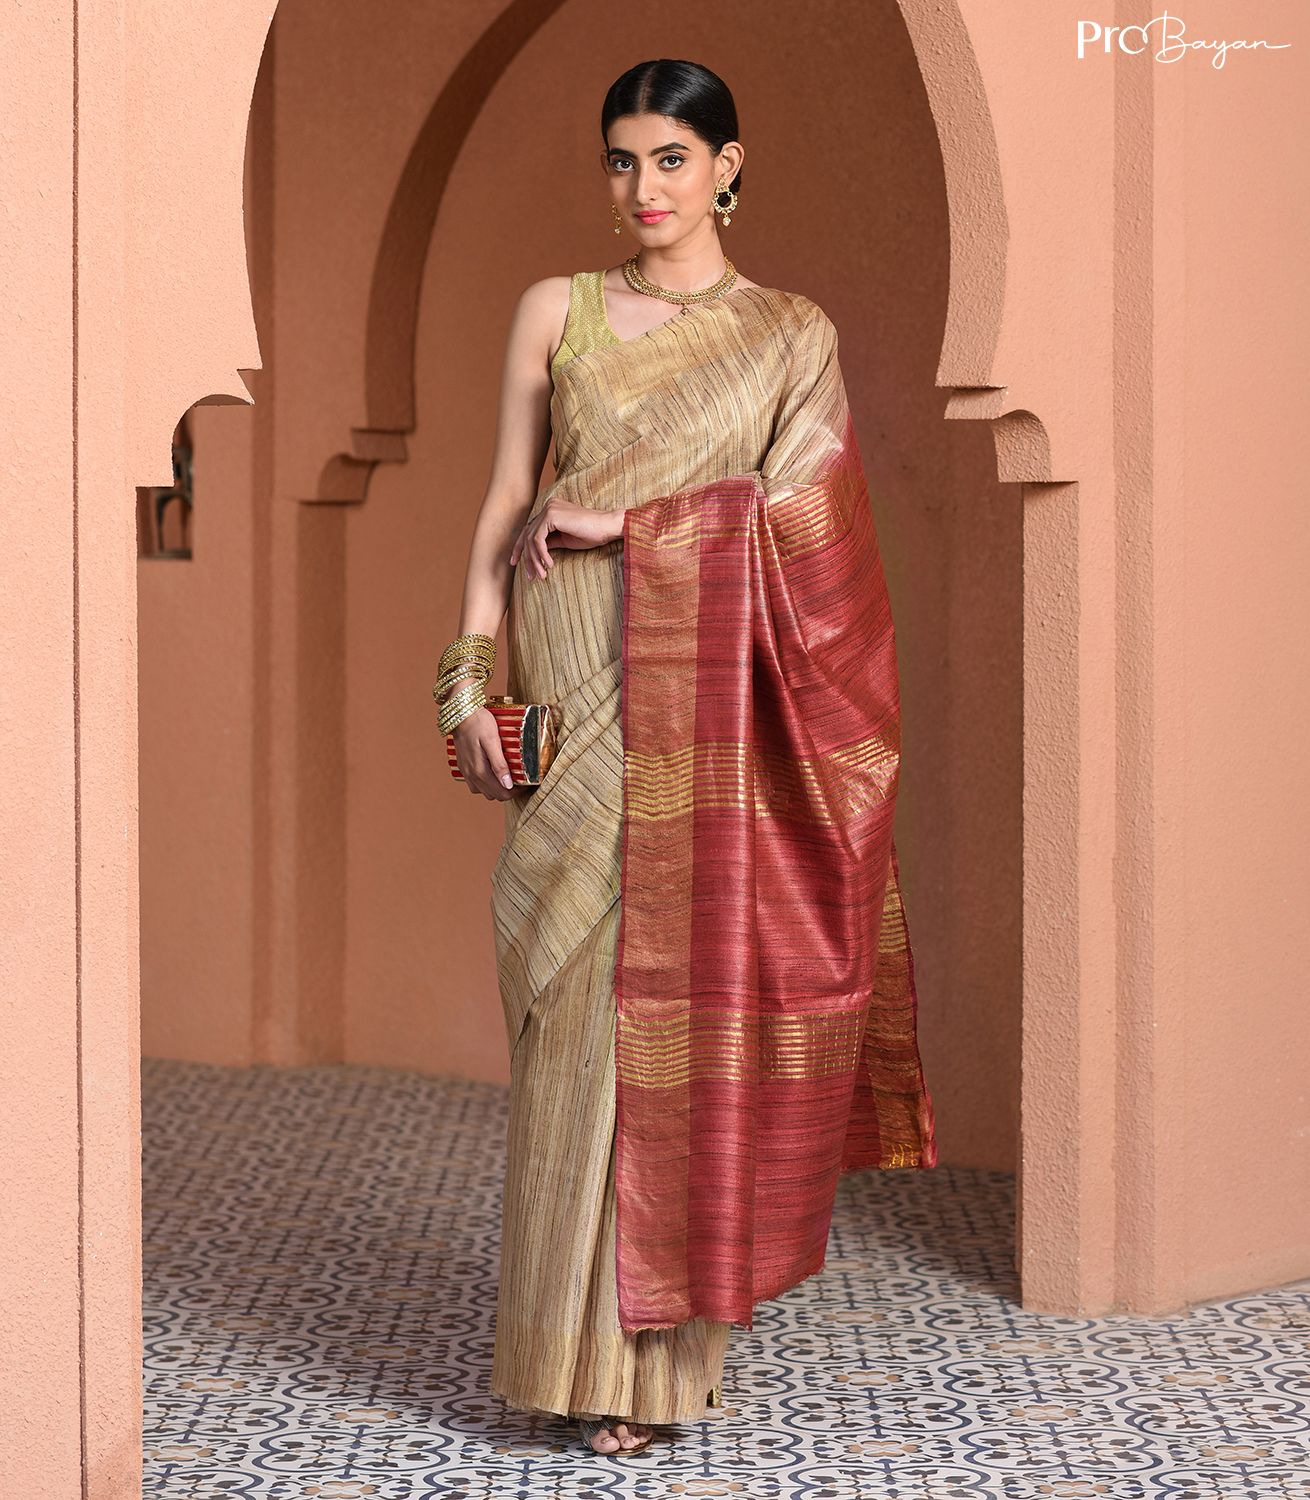 Tussar Ghicha Silk Off-White and Rosewood Pink Handwoven Saree